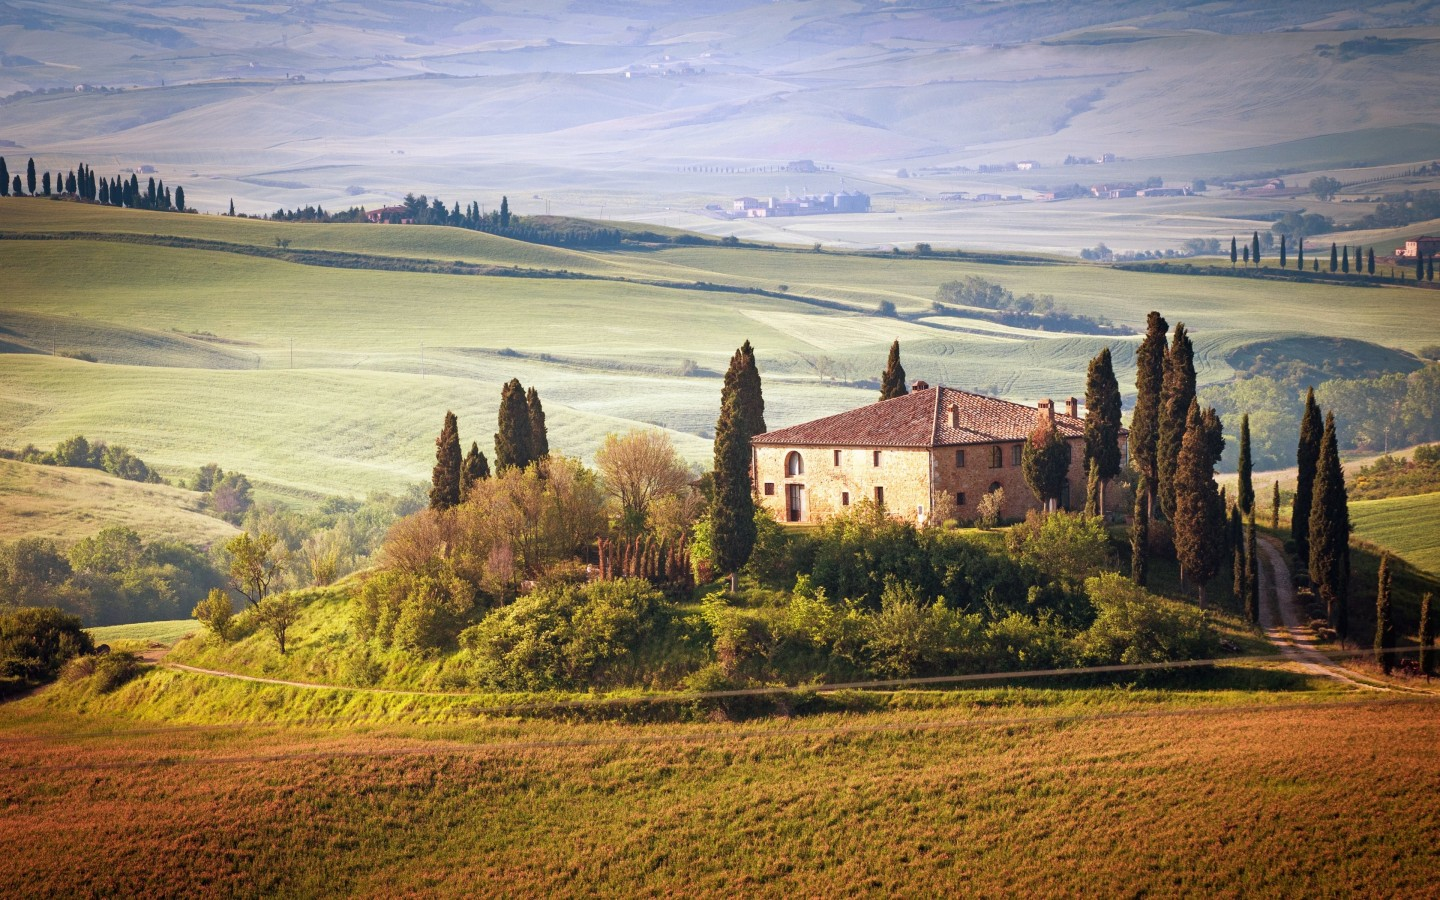 Summer in Tuscany, Italy Wallpaper for Desktop 1440x900